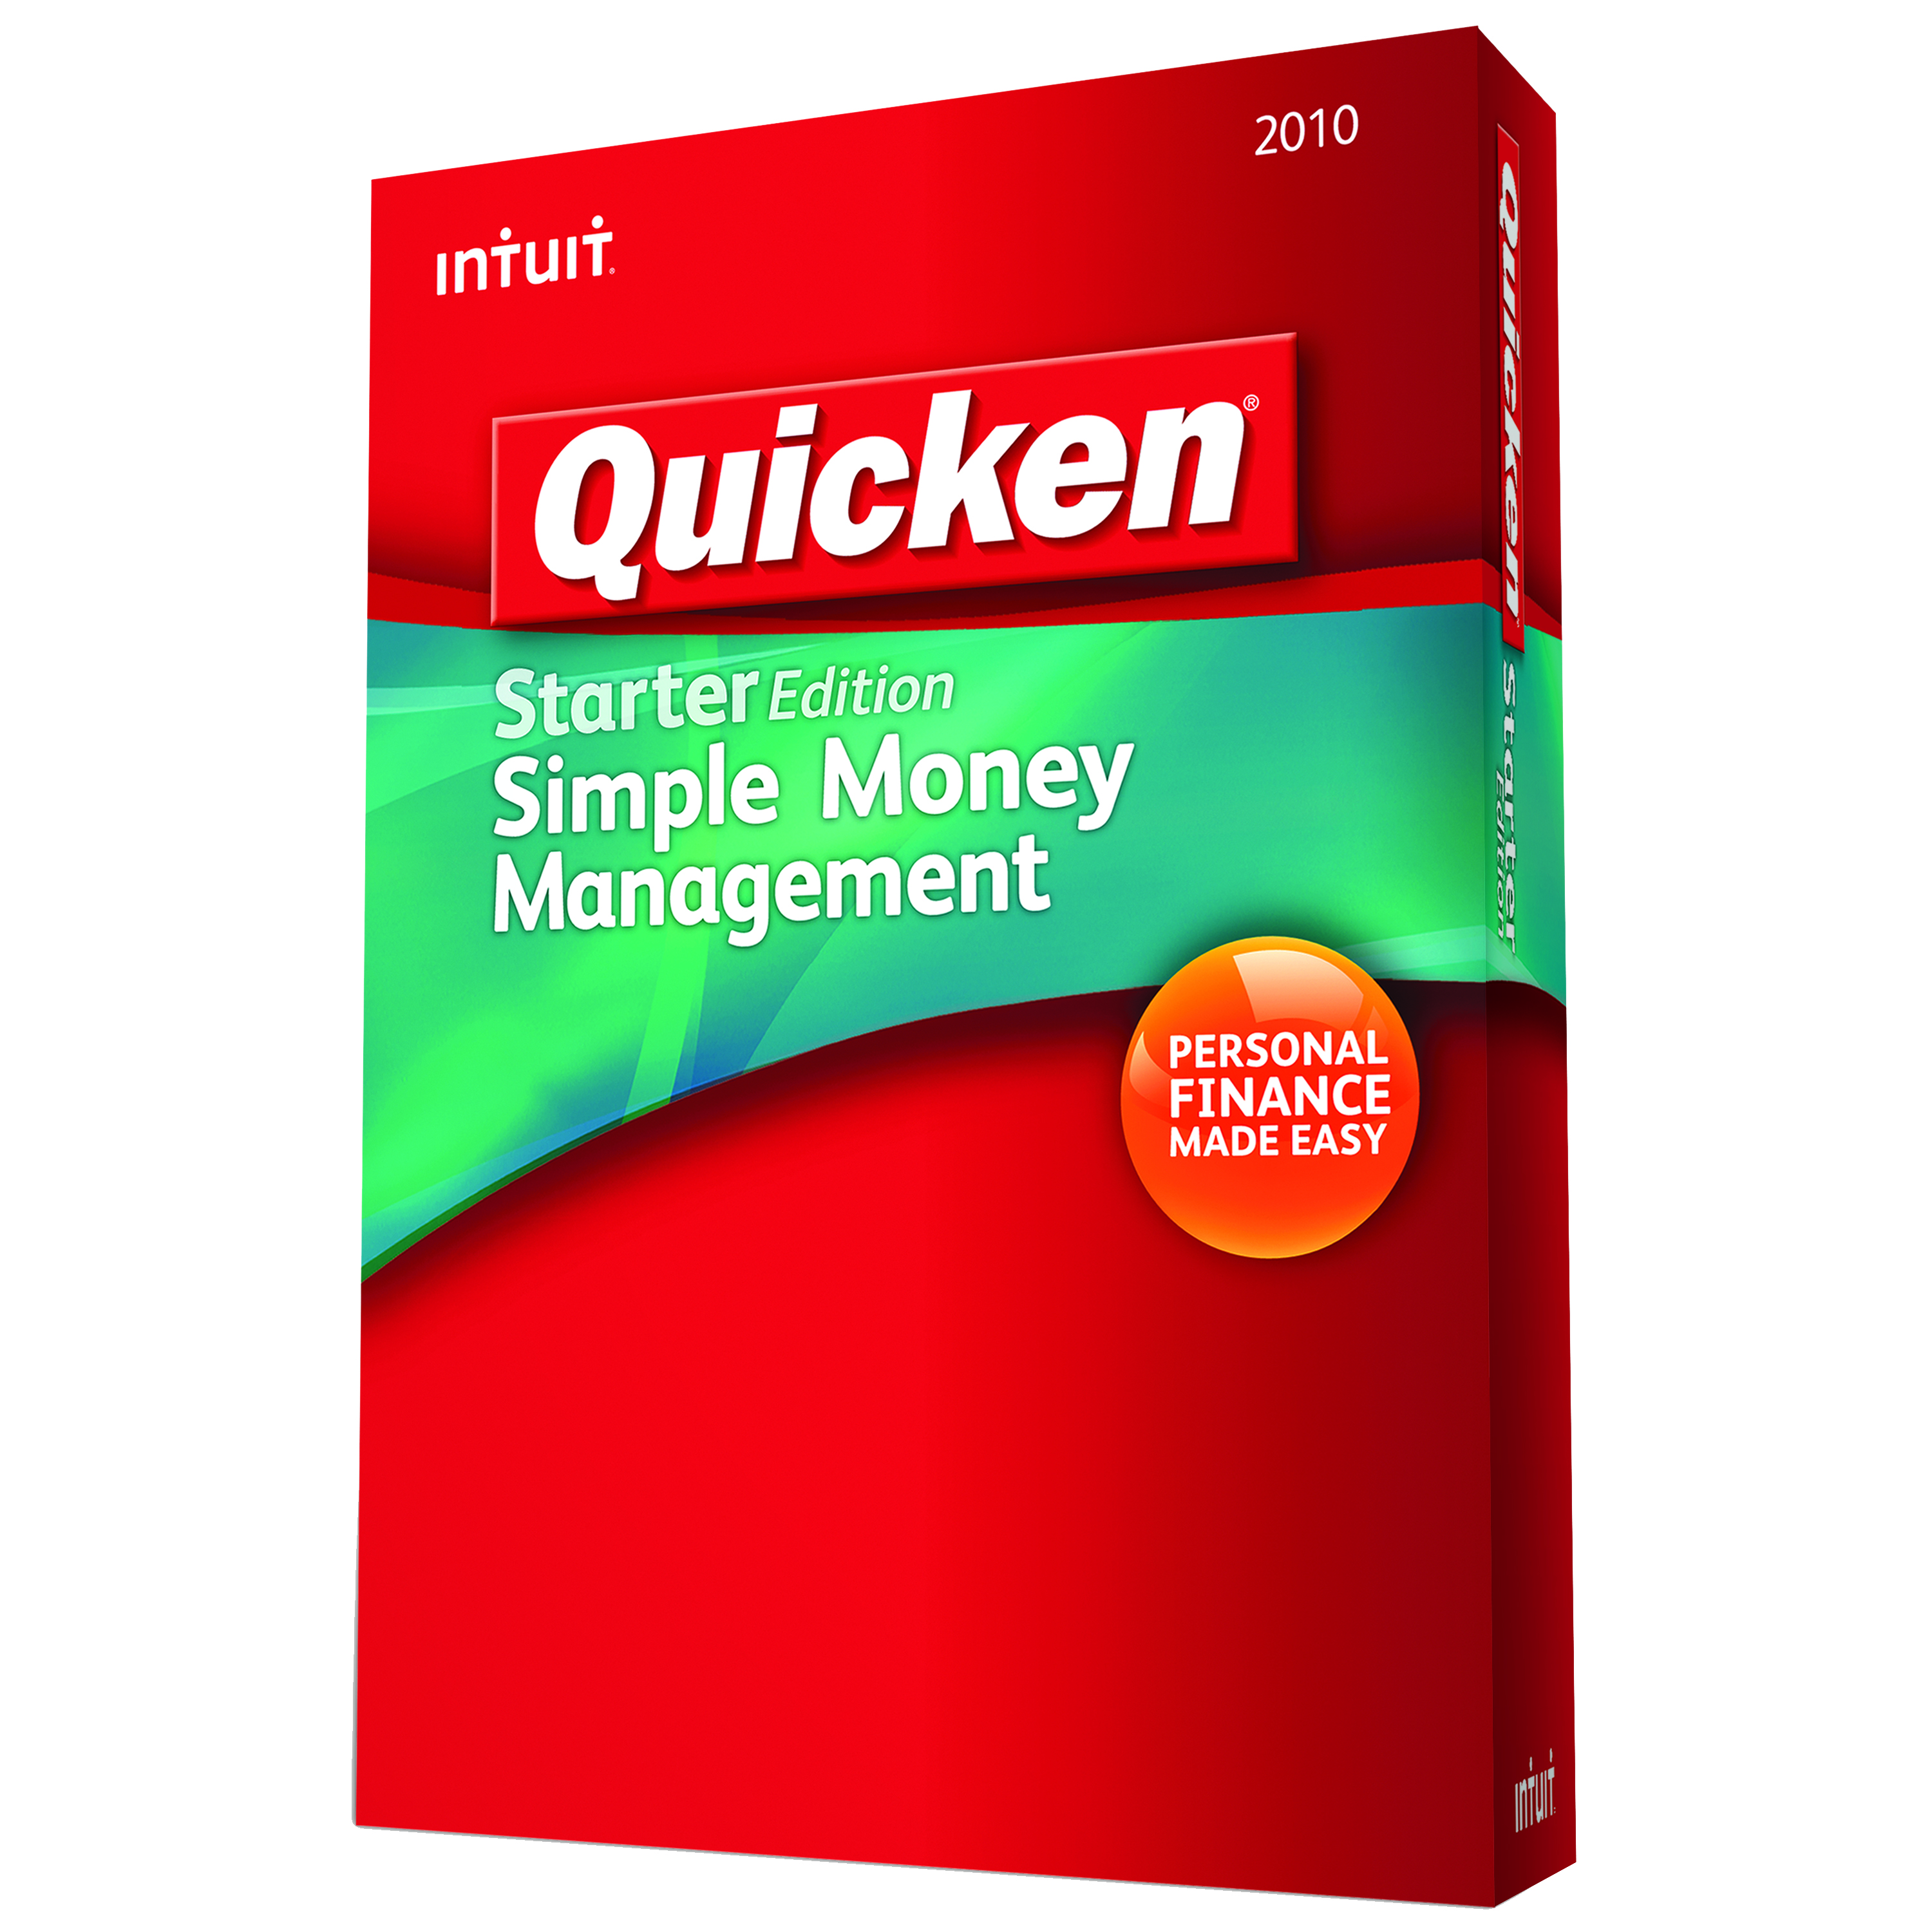 quicken starter edition download free